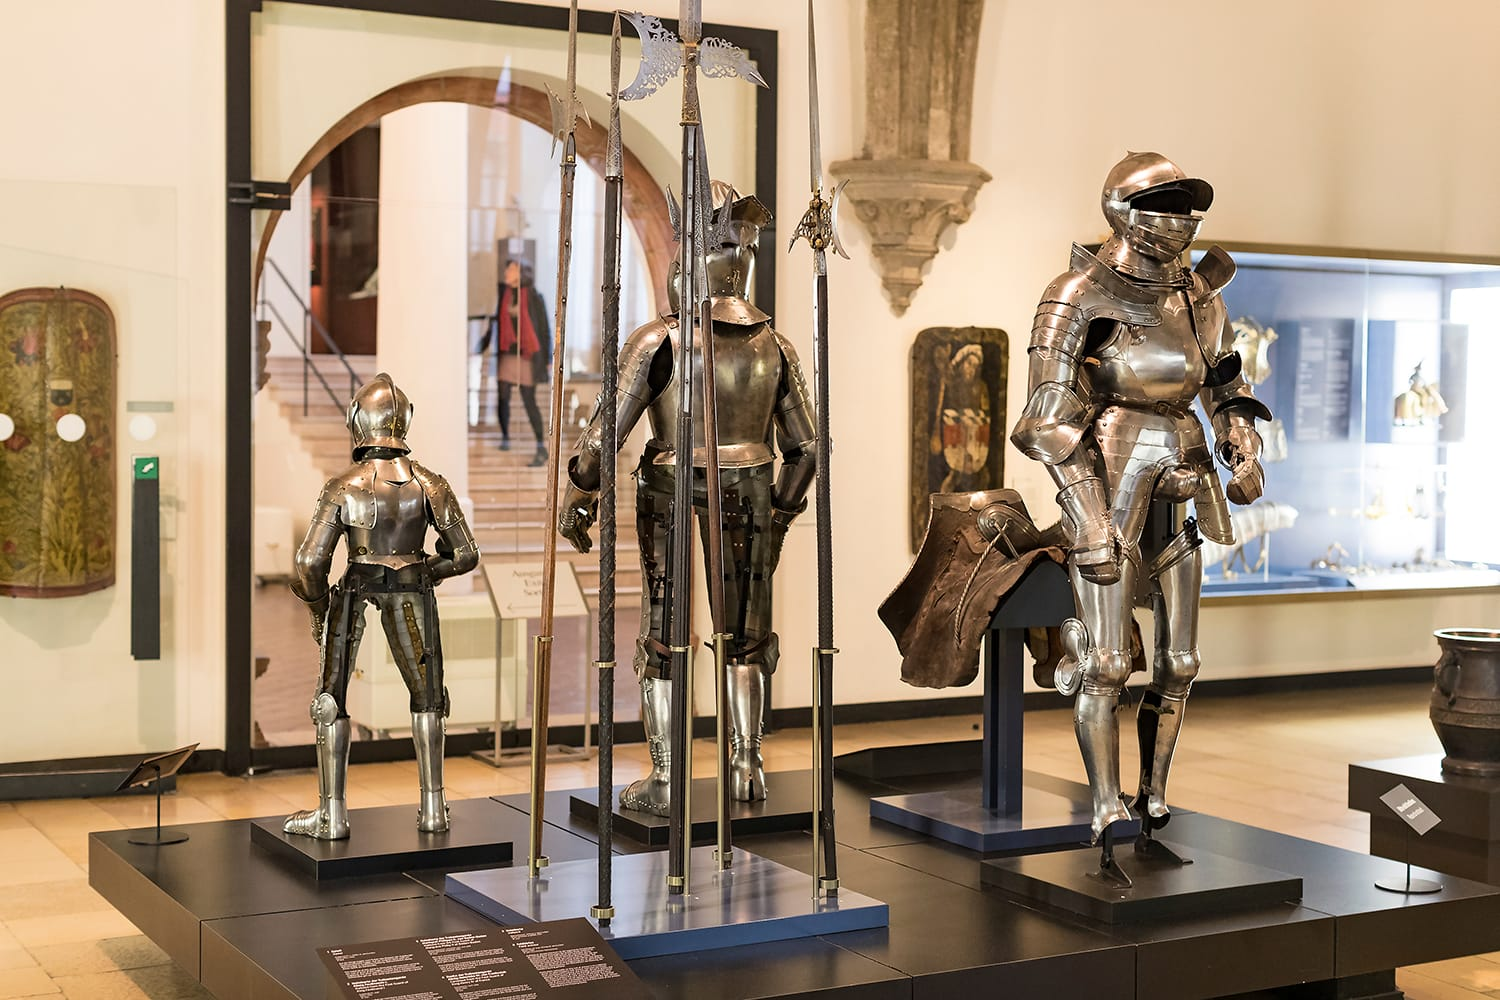 The exposition of medieval armor and knight knights presented in the Bavarian National Museum in Munich.